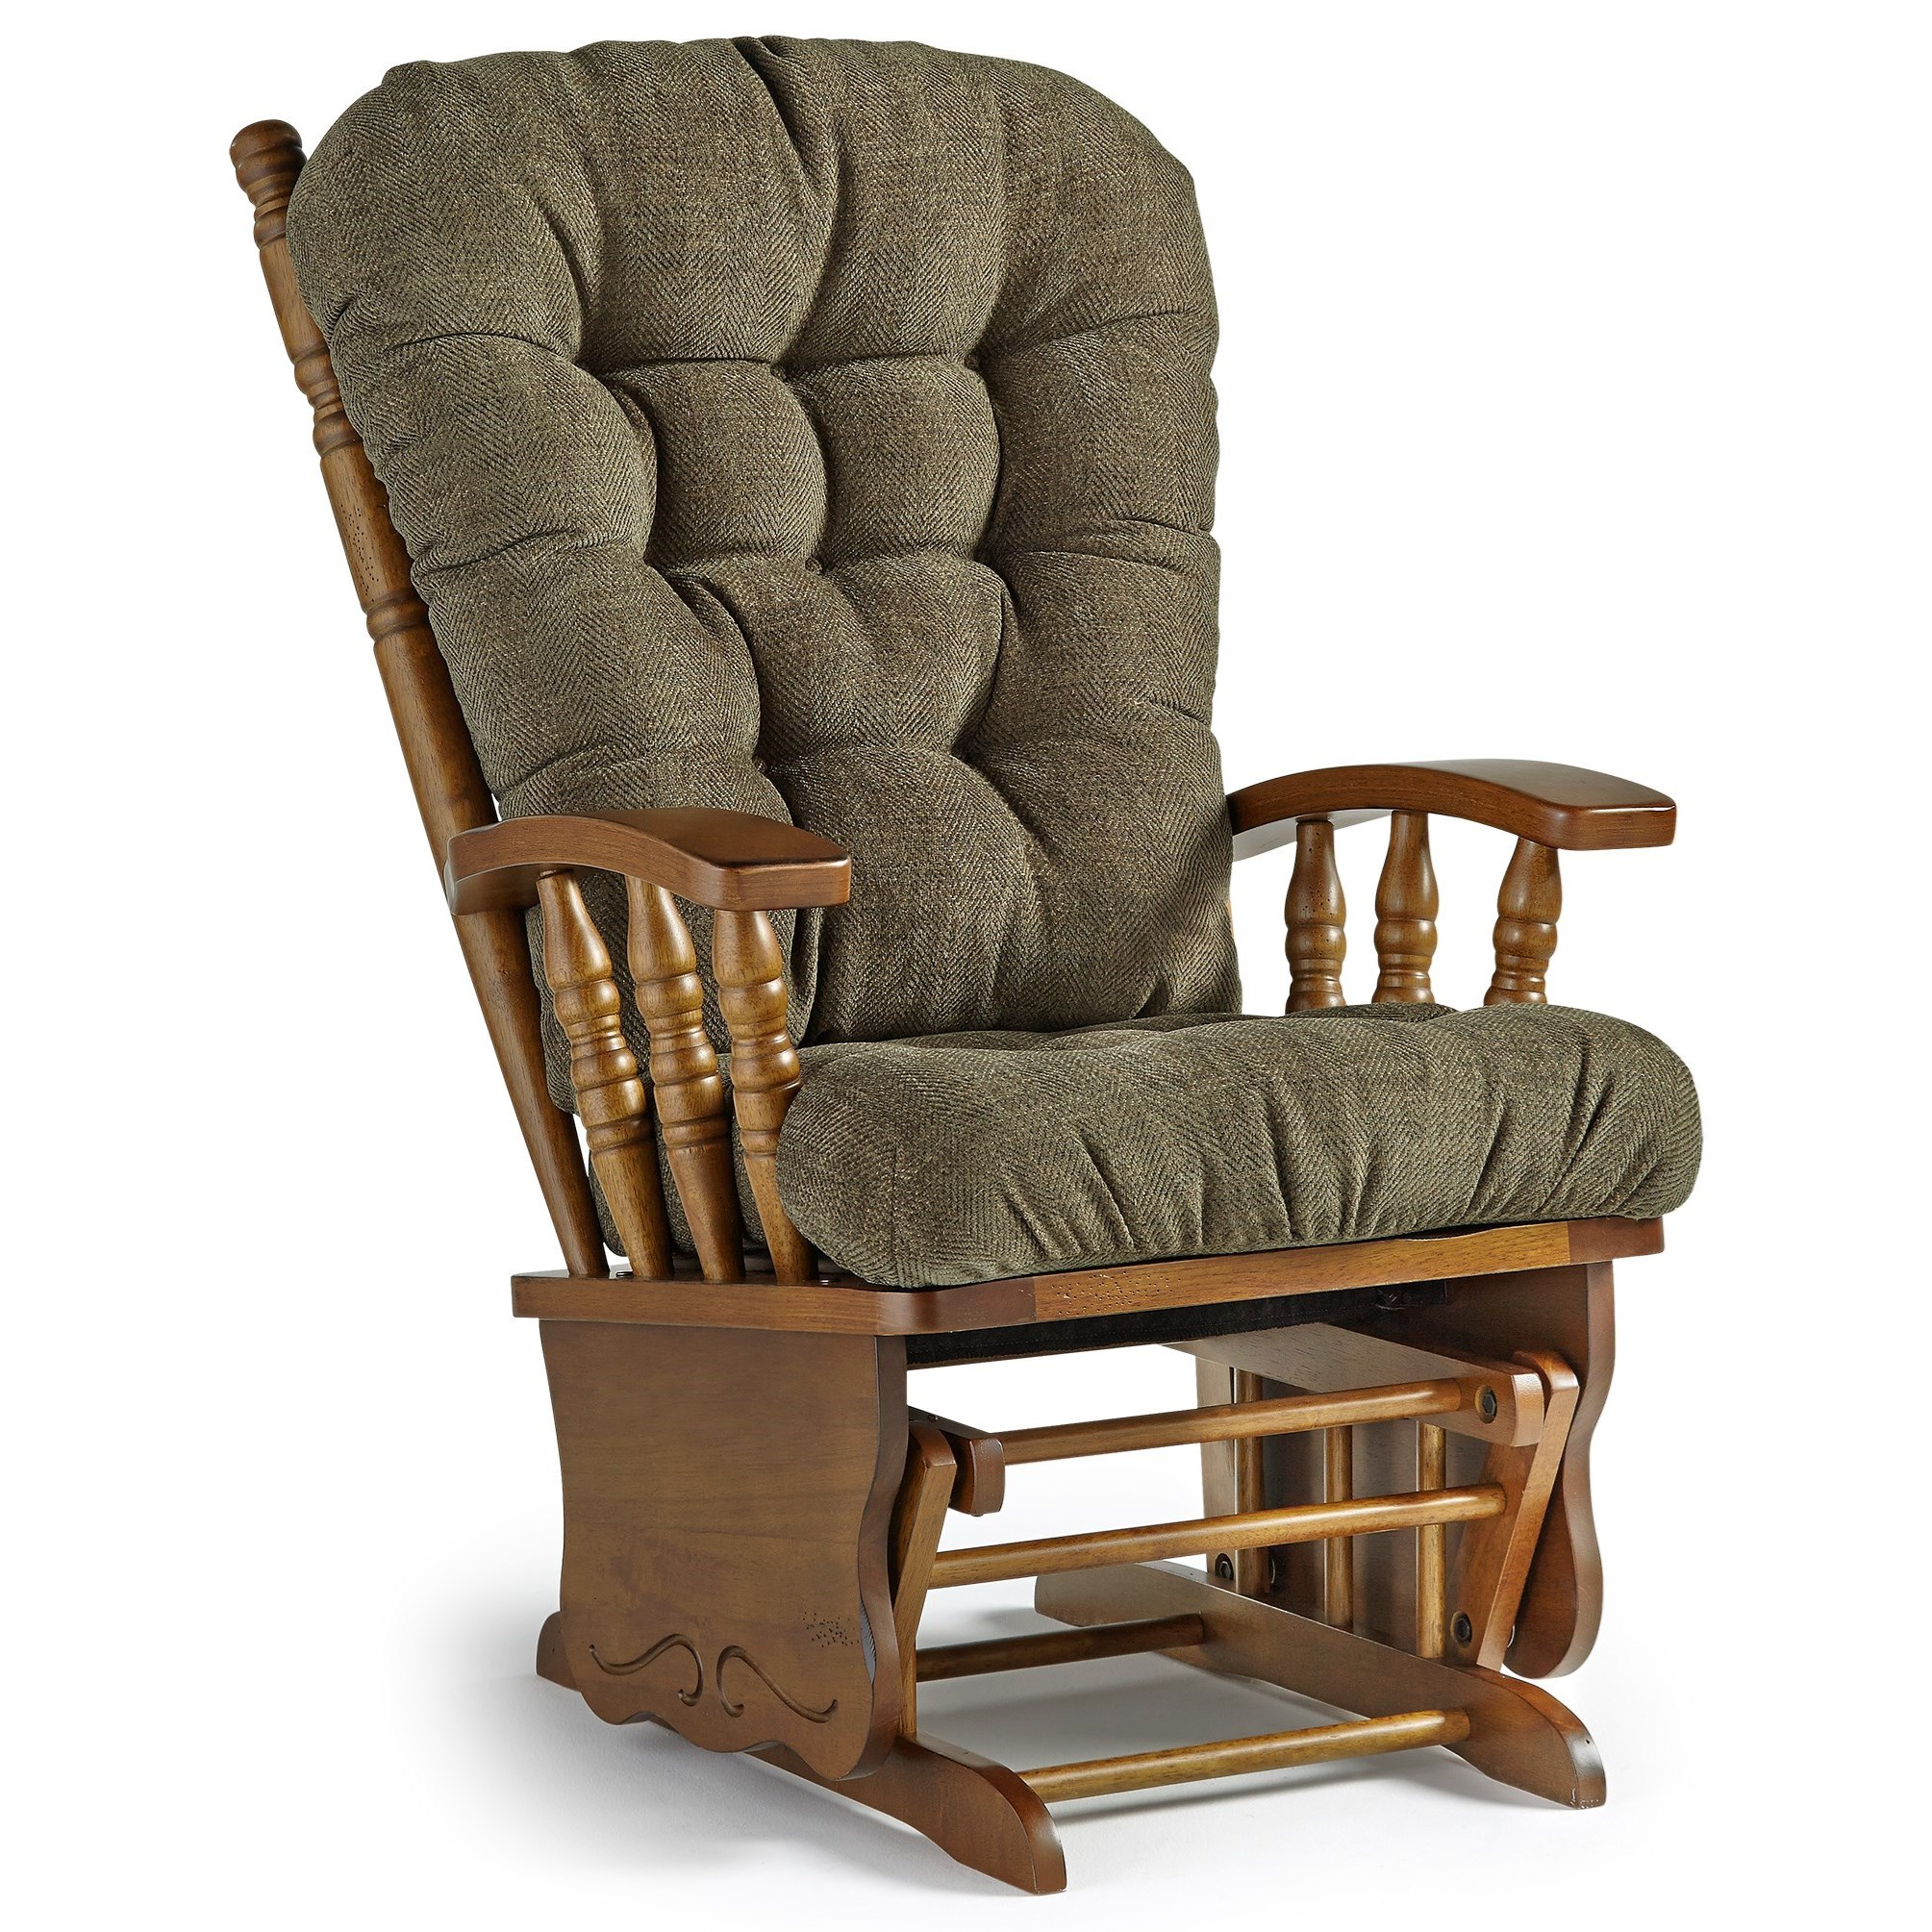 Vendor 411 Glider Rockers Henley Glider Rocker - Item Number: C5867